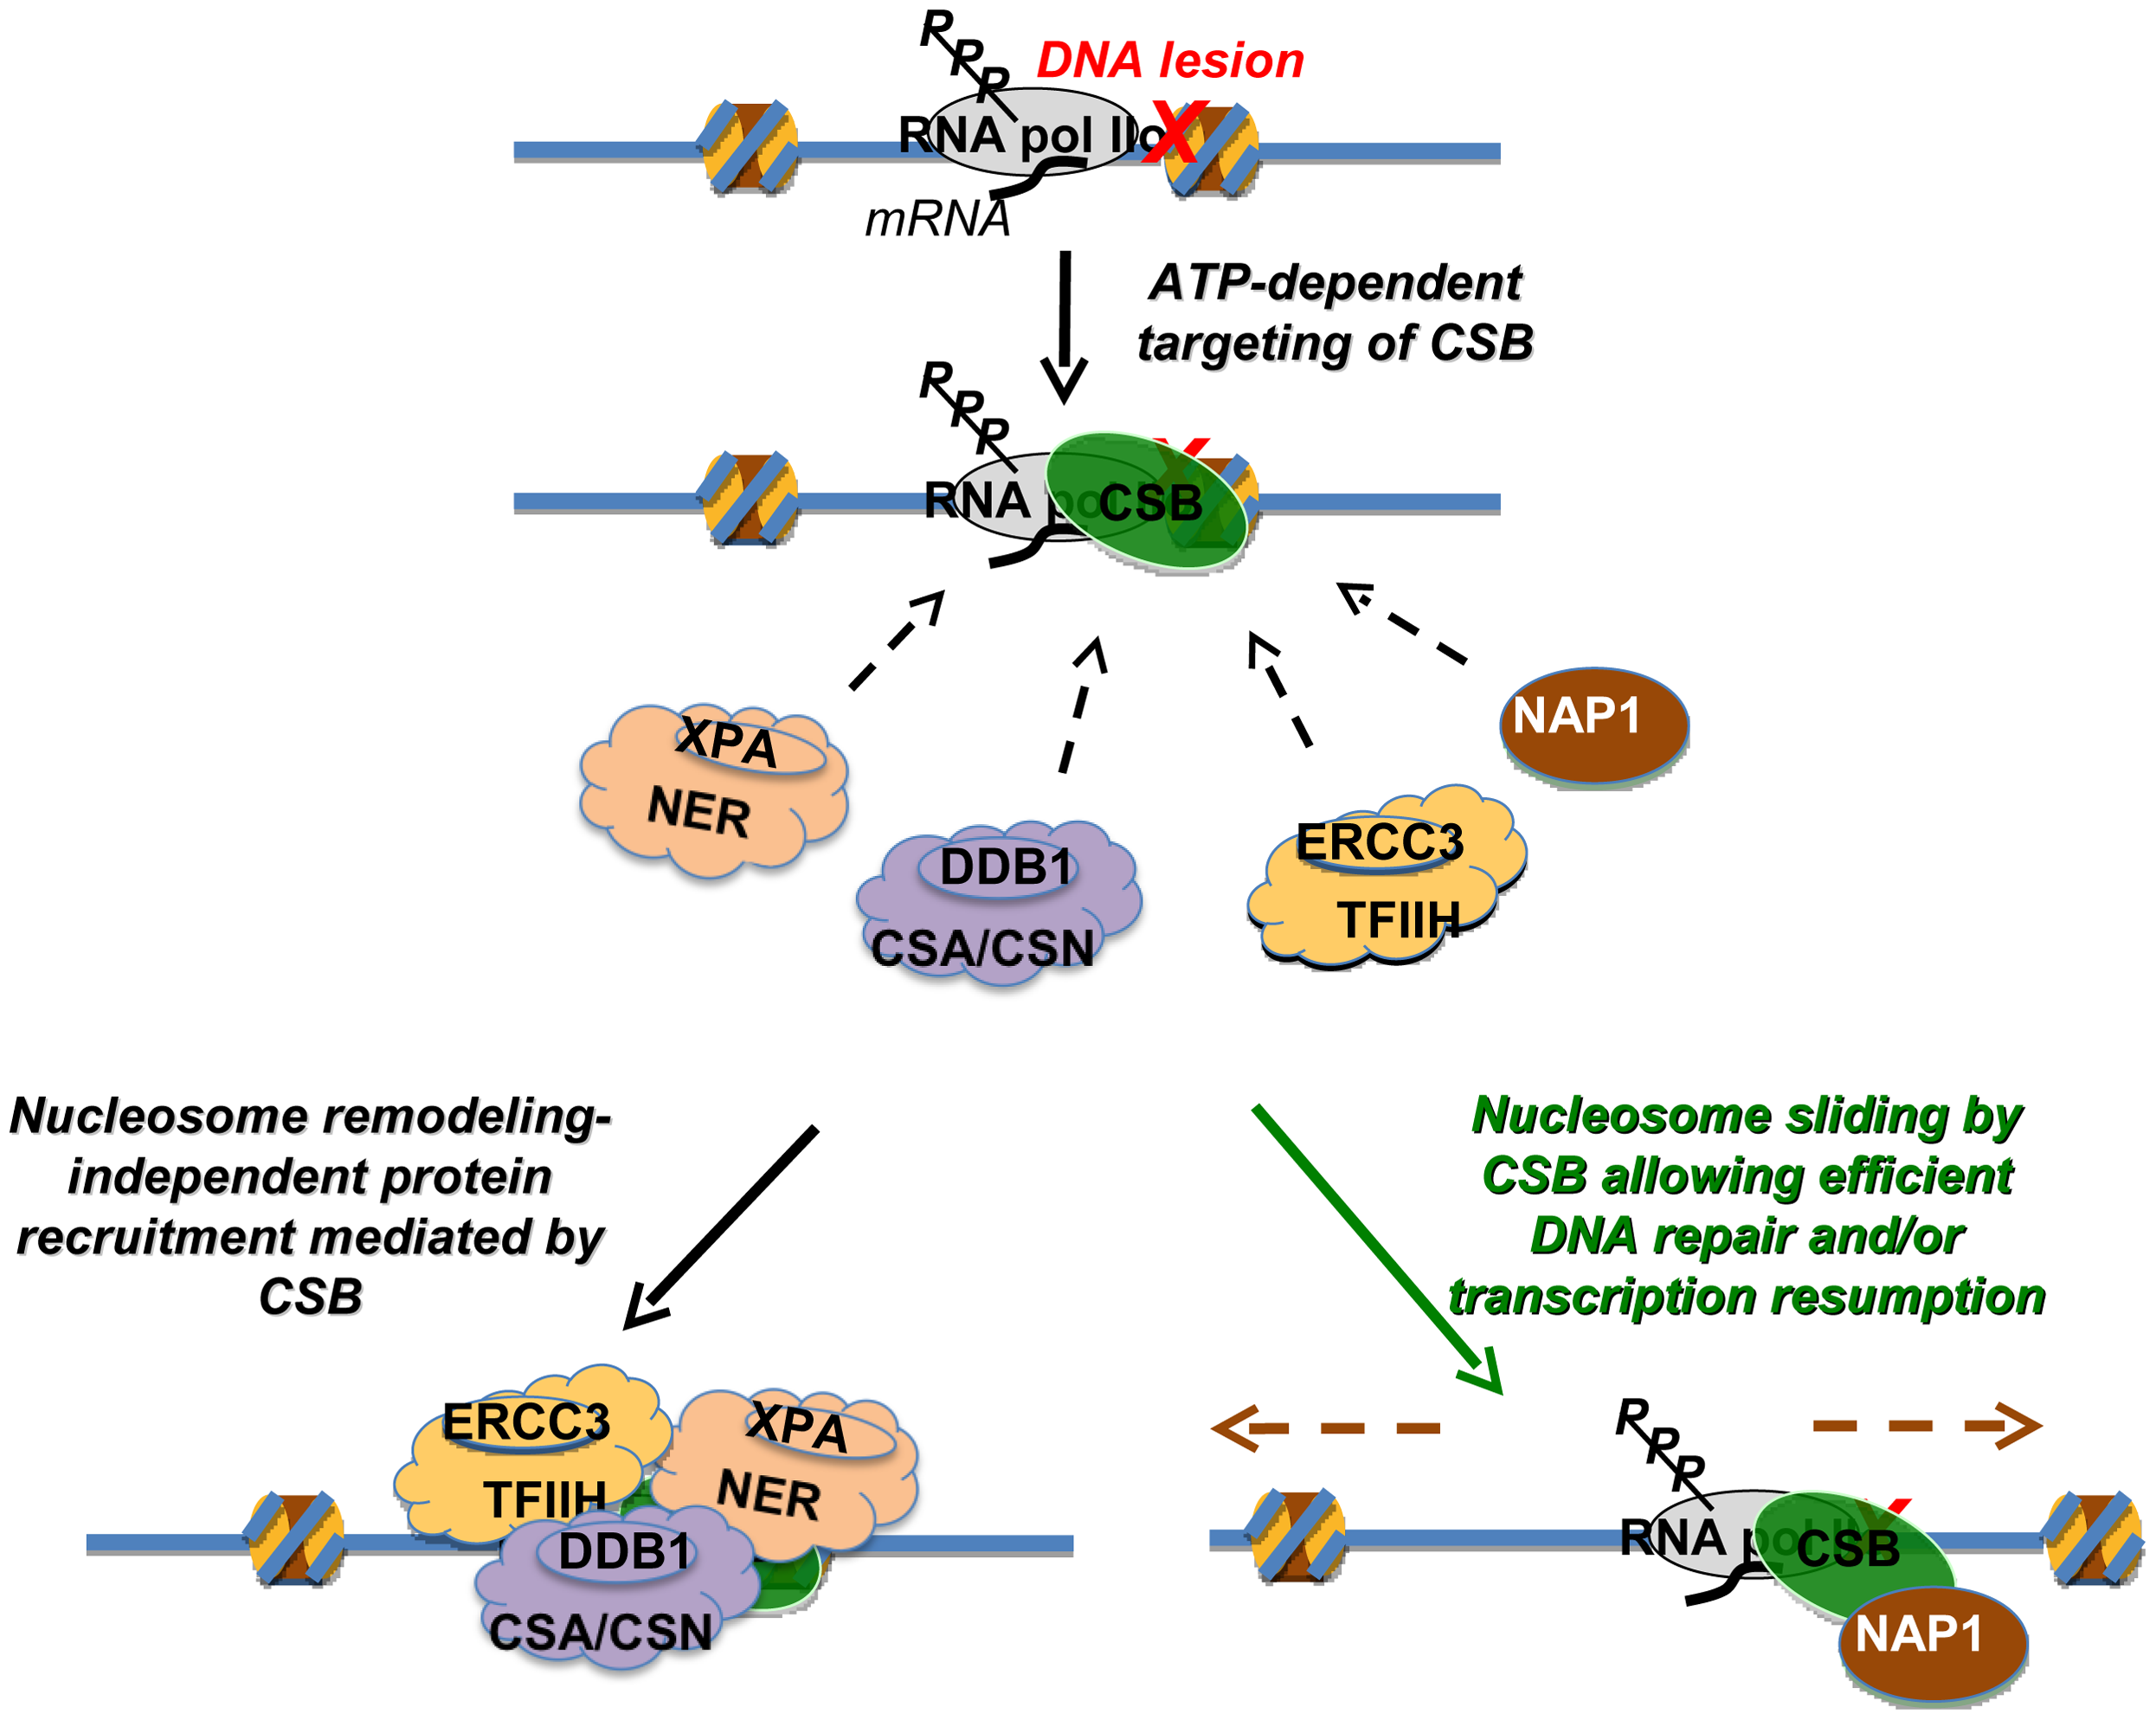 Model Depicting the Distinct Activities of CSB in Transcription-Coupled DNA Repair.